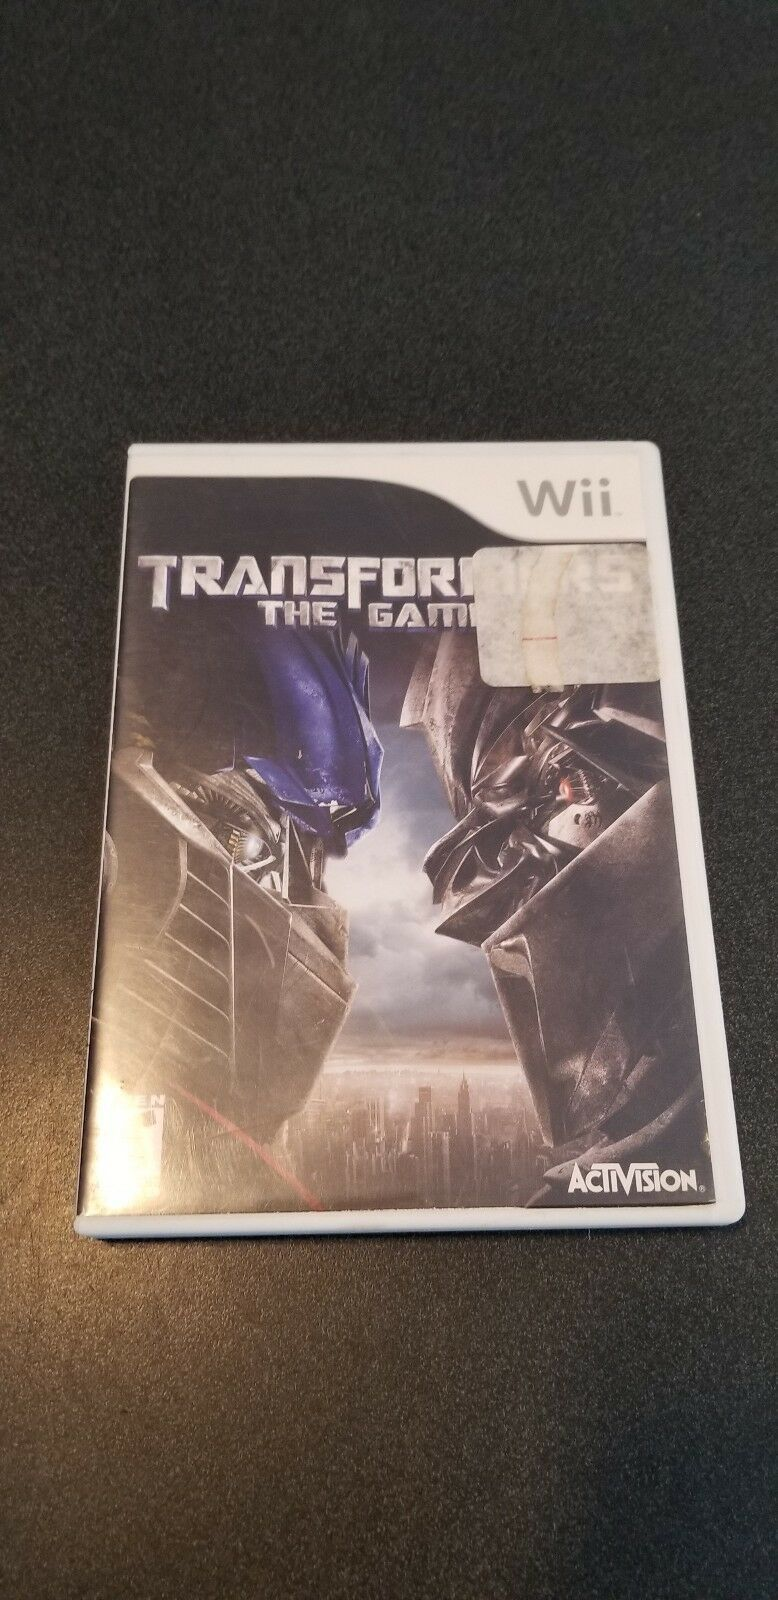 TRANSFORMERS THE GAME - Wii - COMPLETE W MANUAL